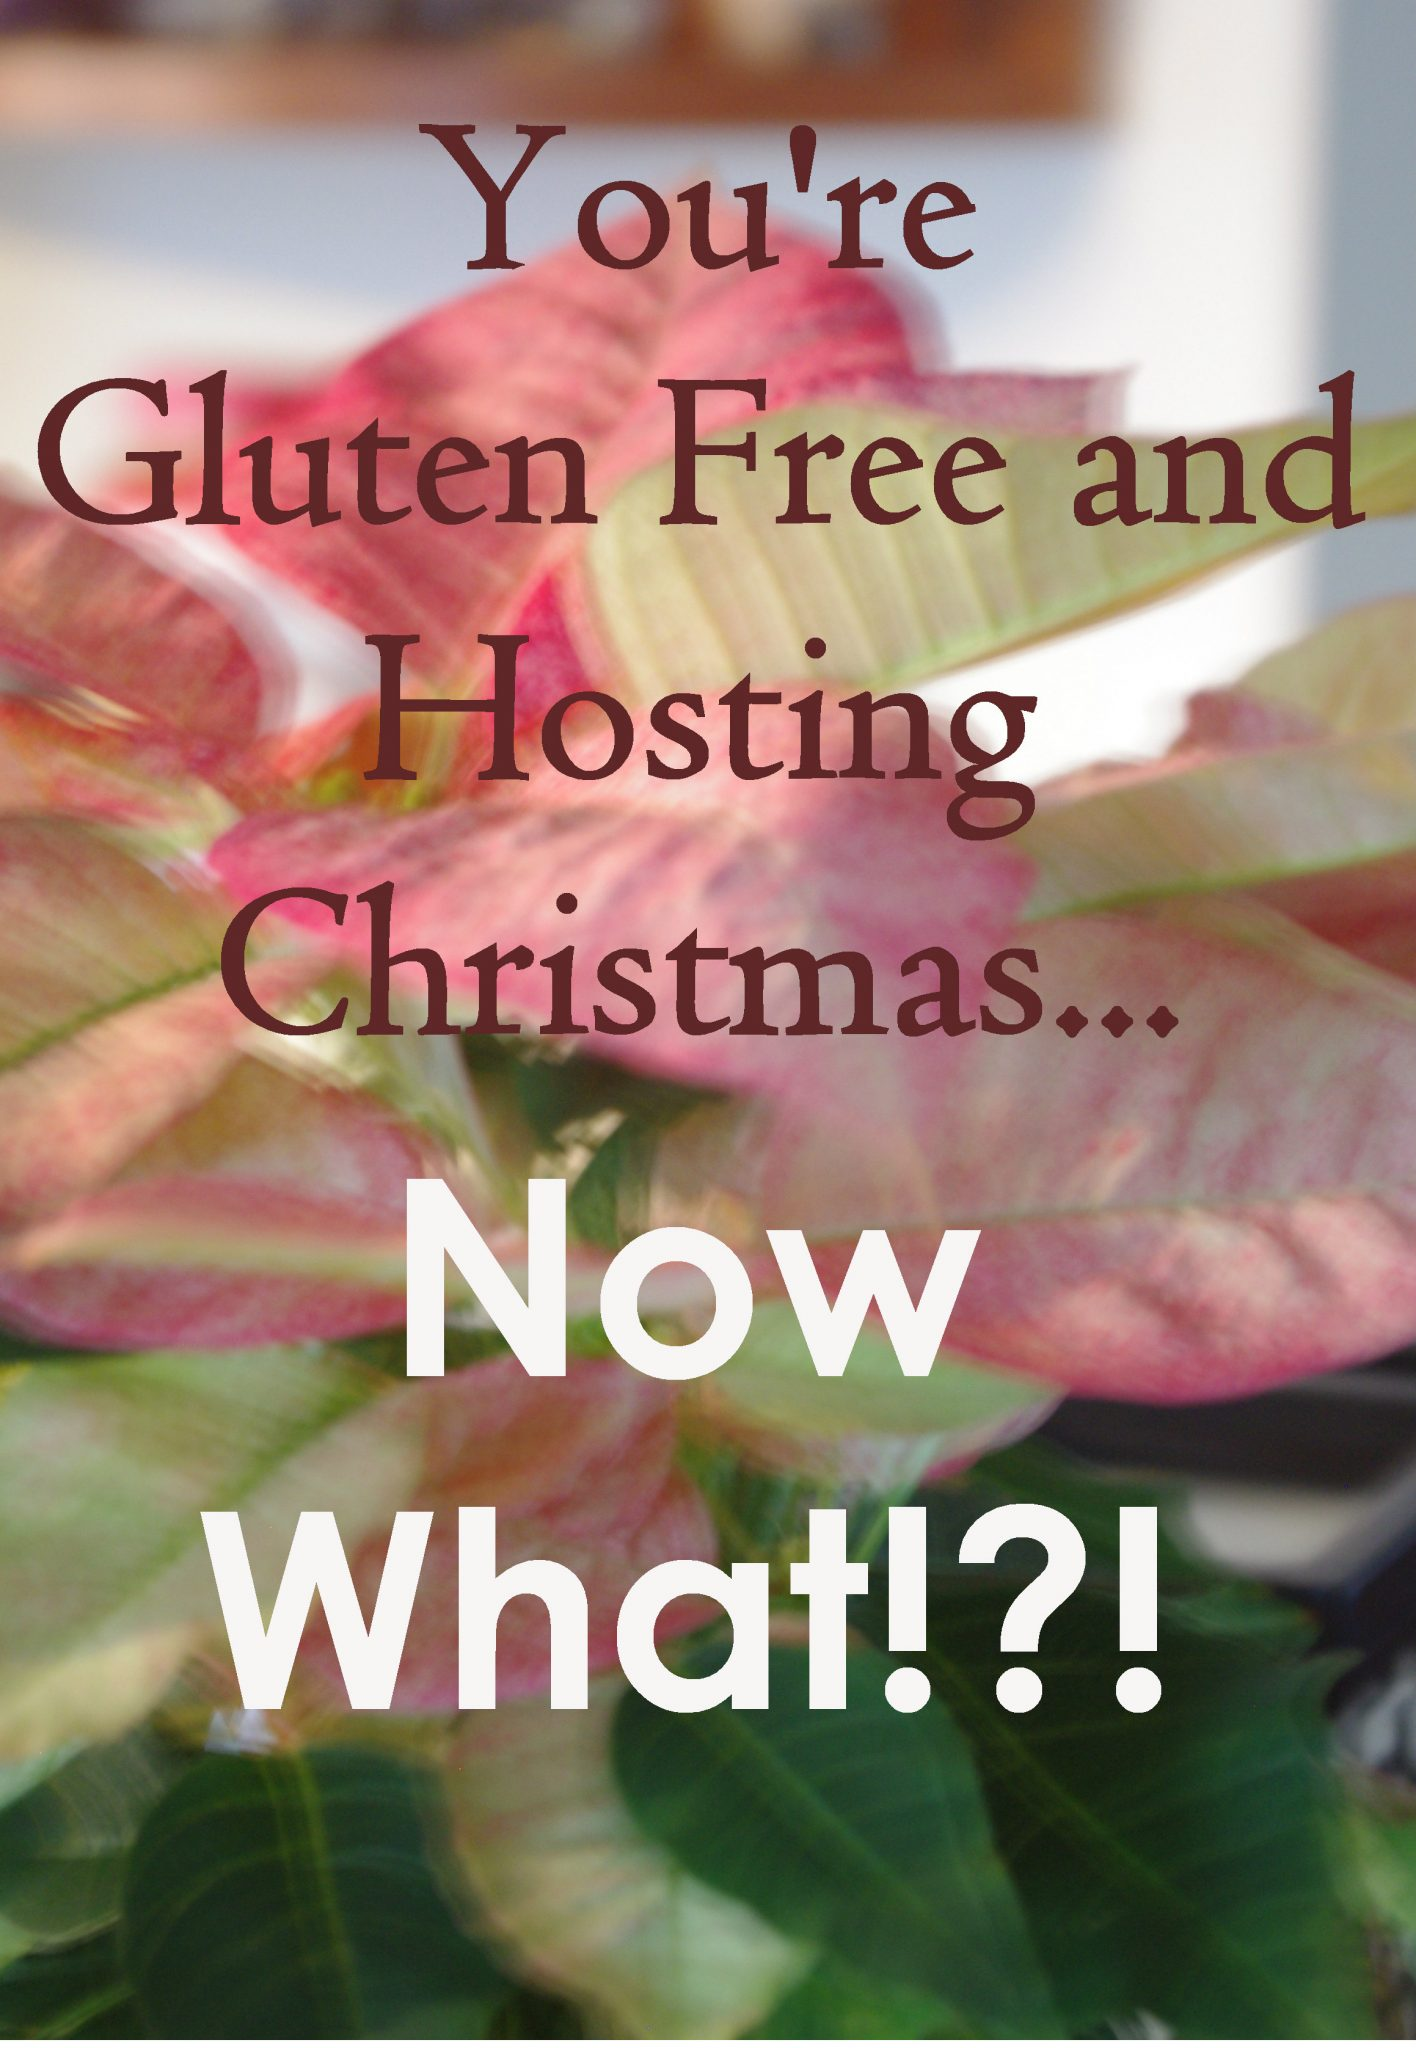 Trying to Host a Gluten Free Christmas